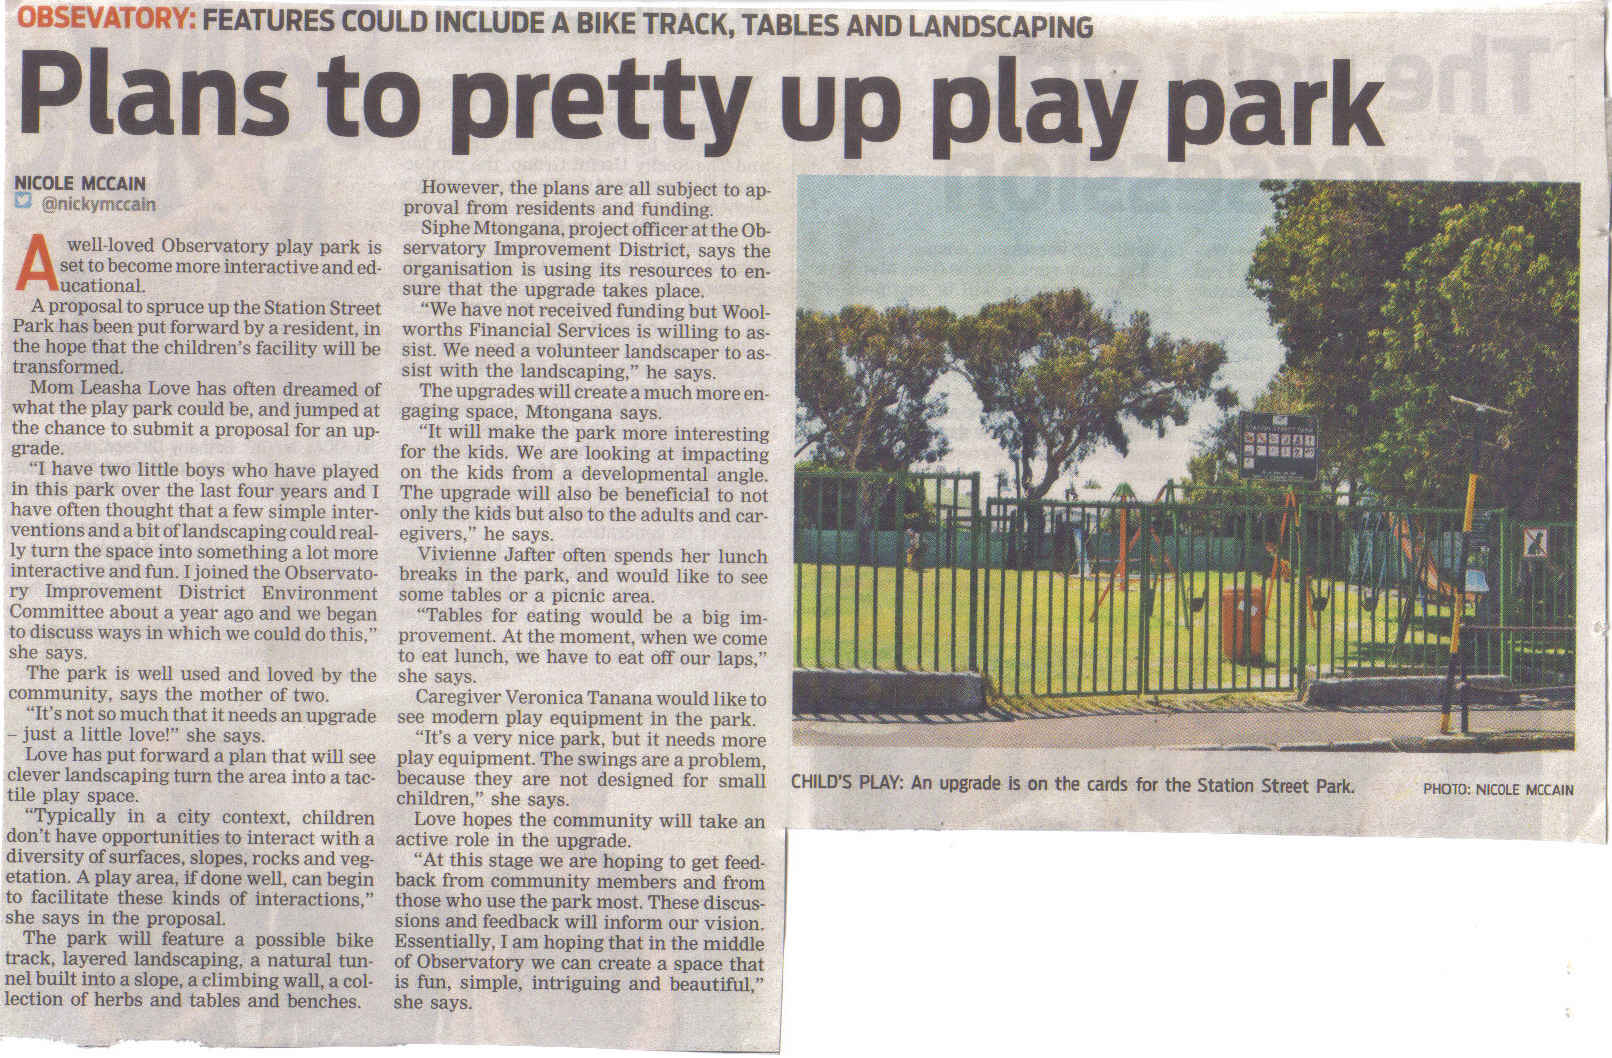 Plans to pretty up play park (People's Post, 13 February 2013